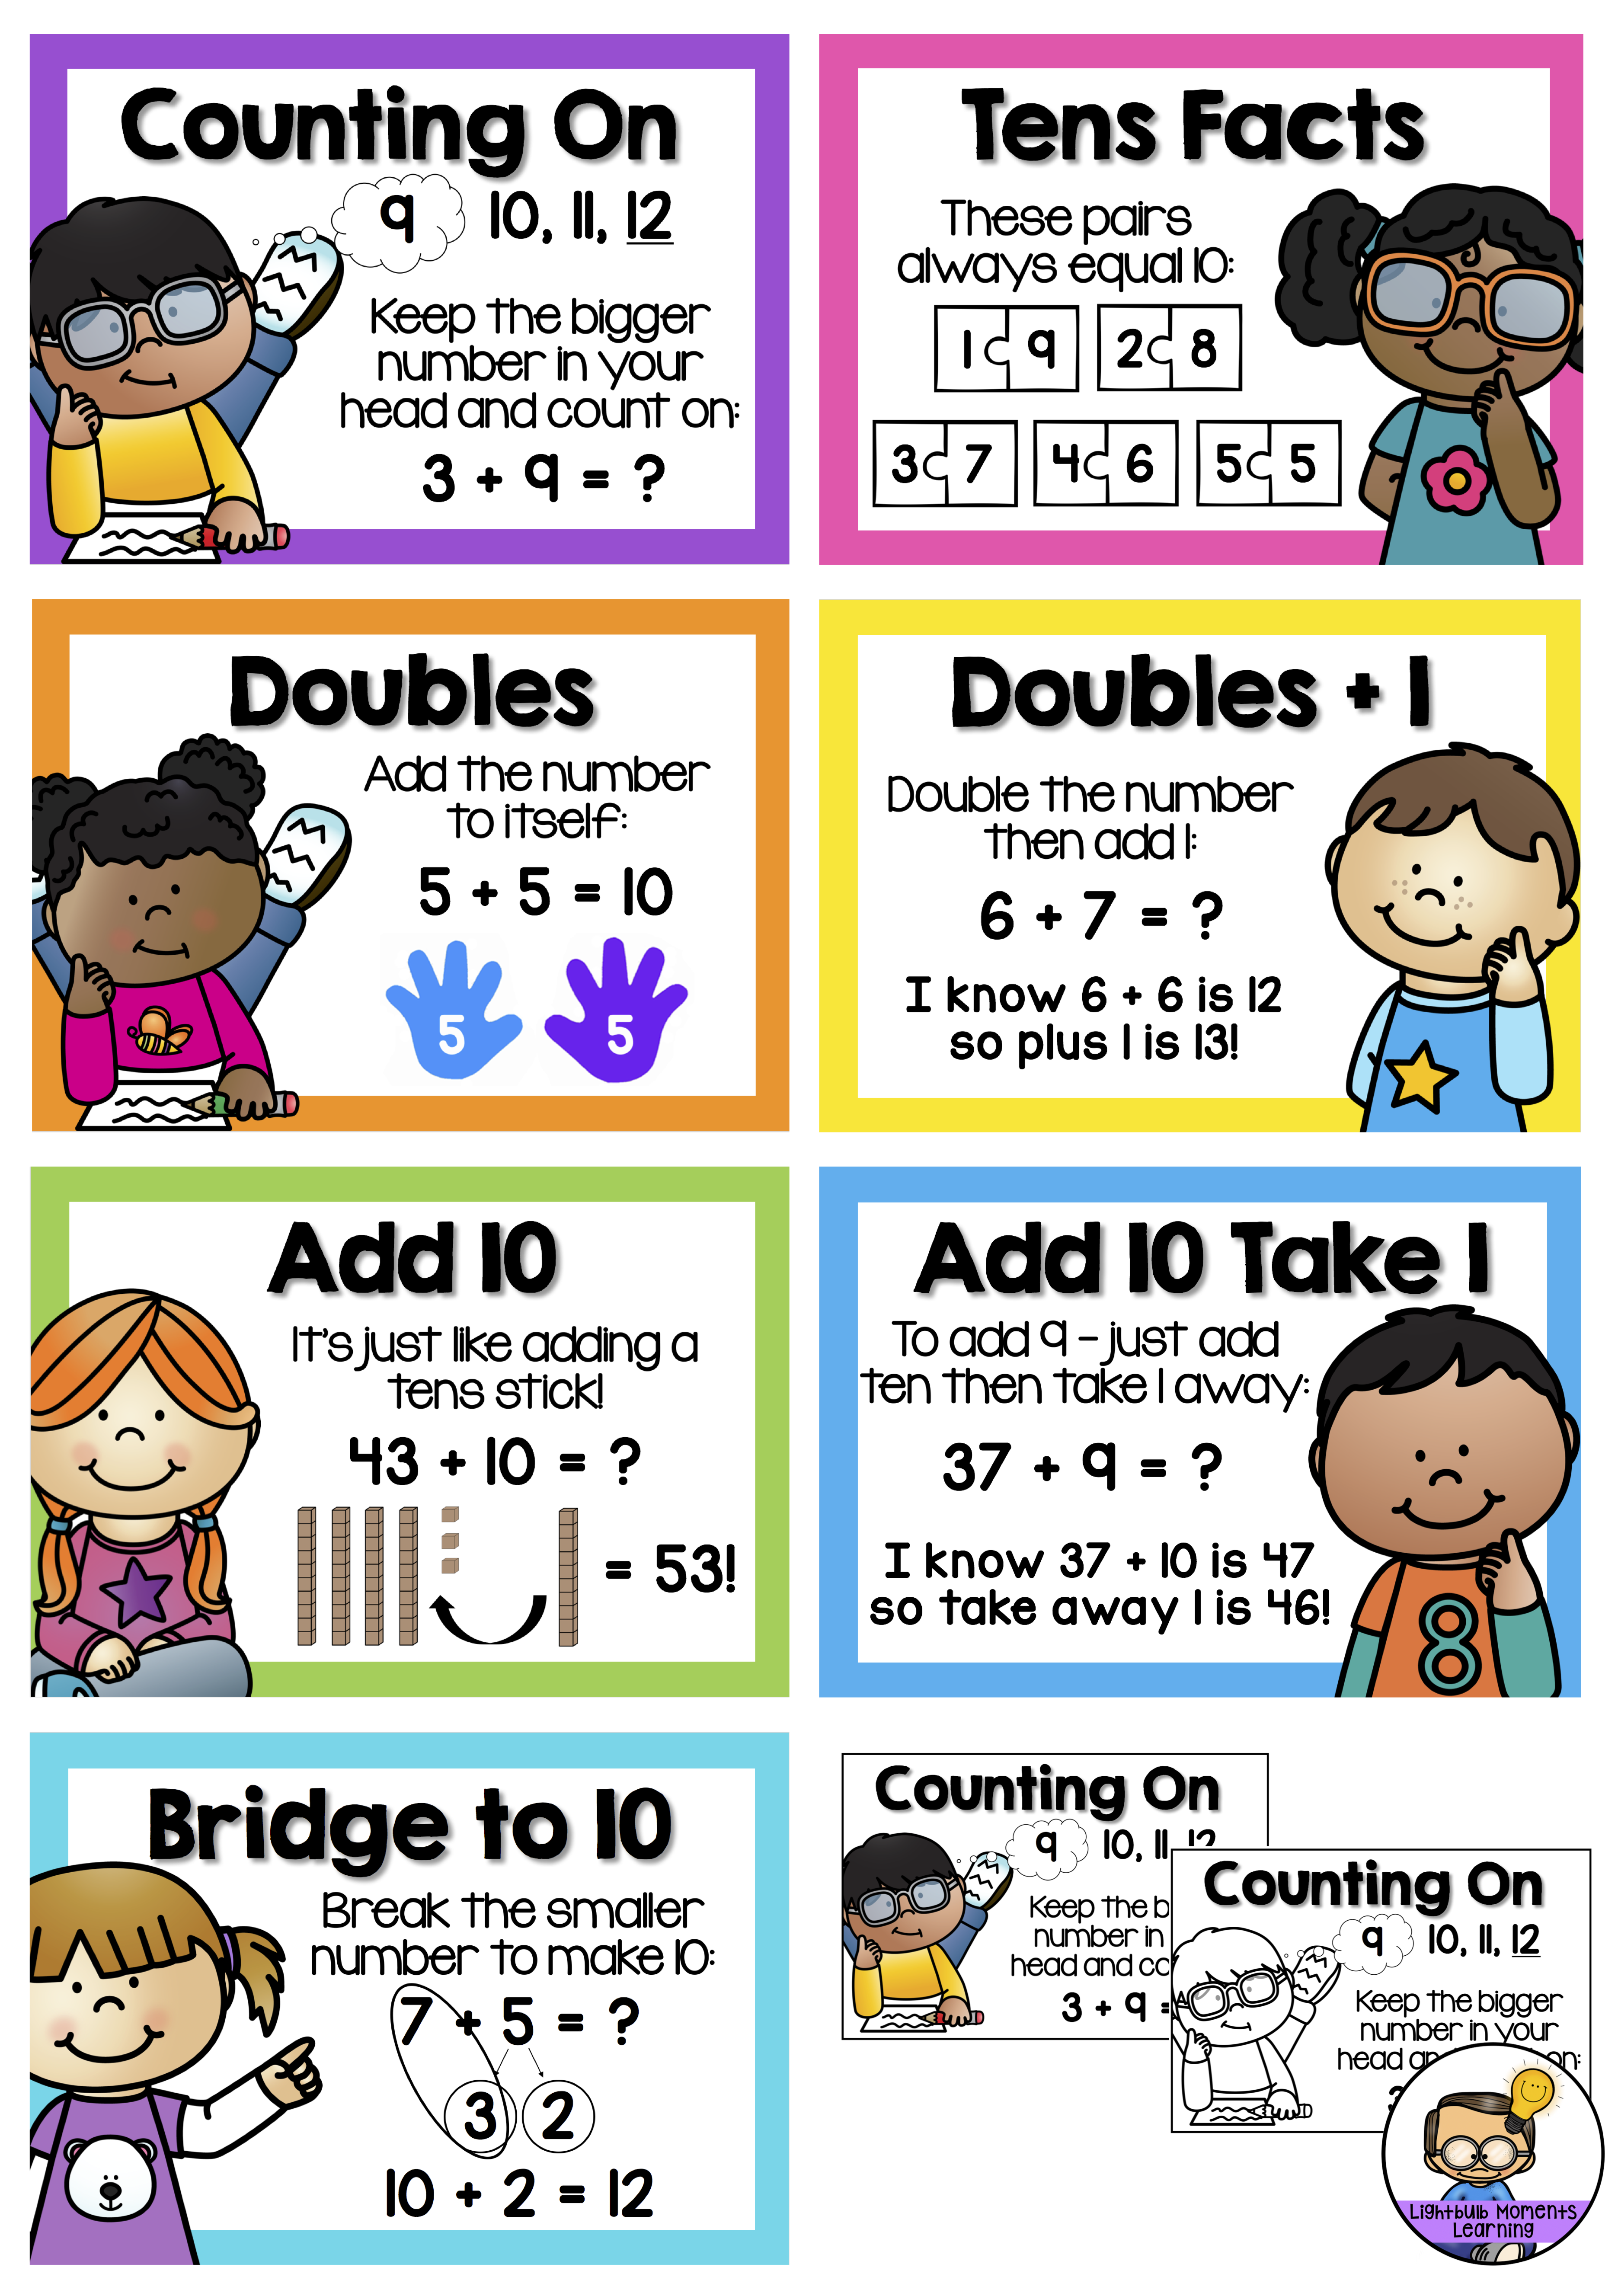 Predownload: Addition Mental Strategies Posters And Activities Counting On Tens Facts Doubles Doubl Math Strategies Anchor Chart Homeschool Math Math Strategies Posters [ 5310 x 3742 Pixel ]